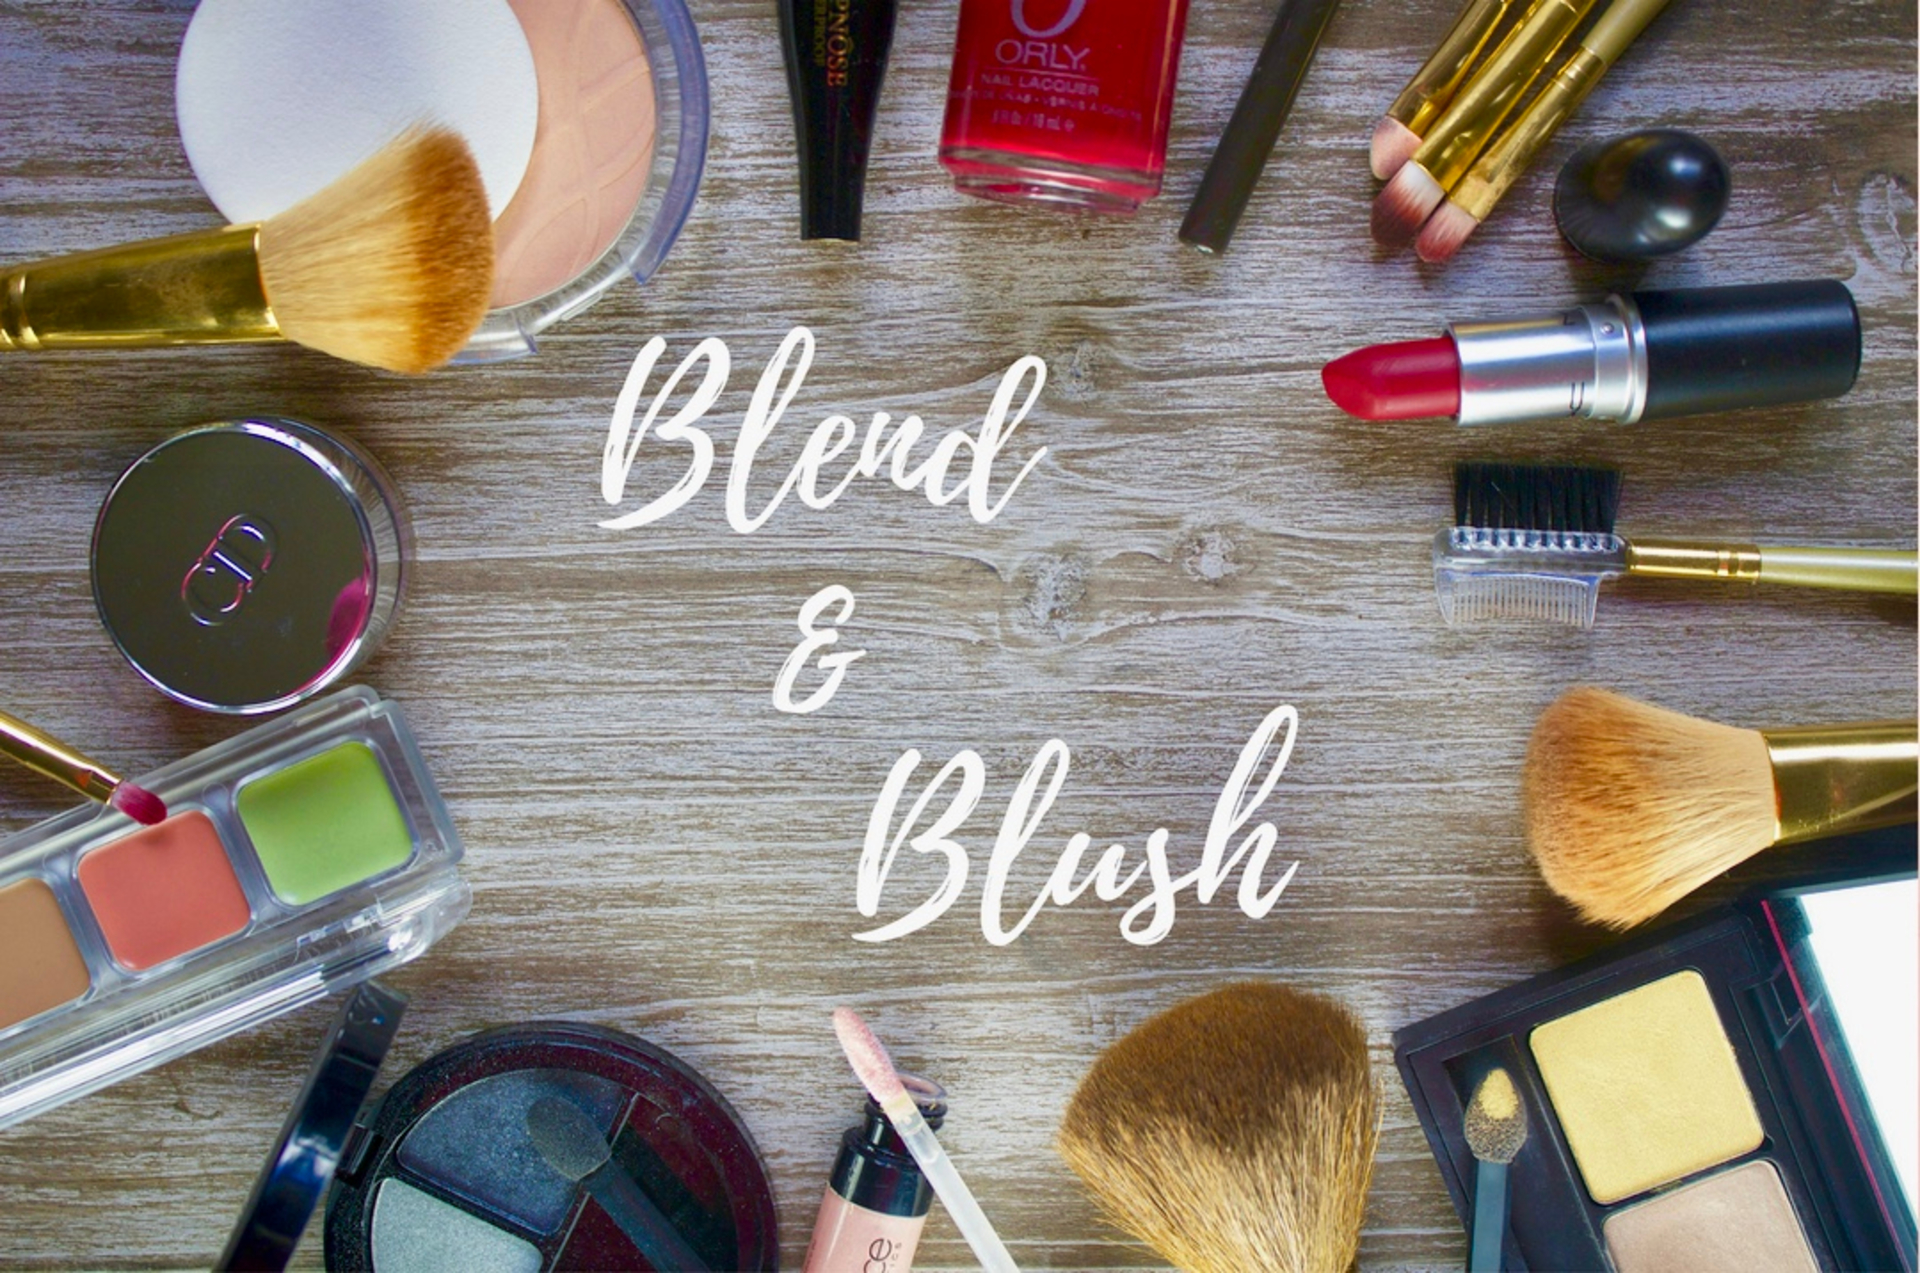 Blend and Blush image